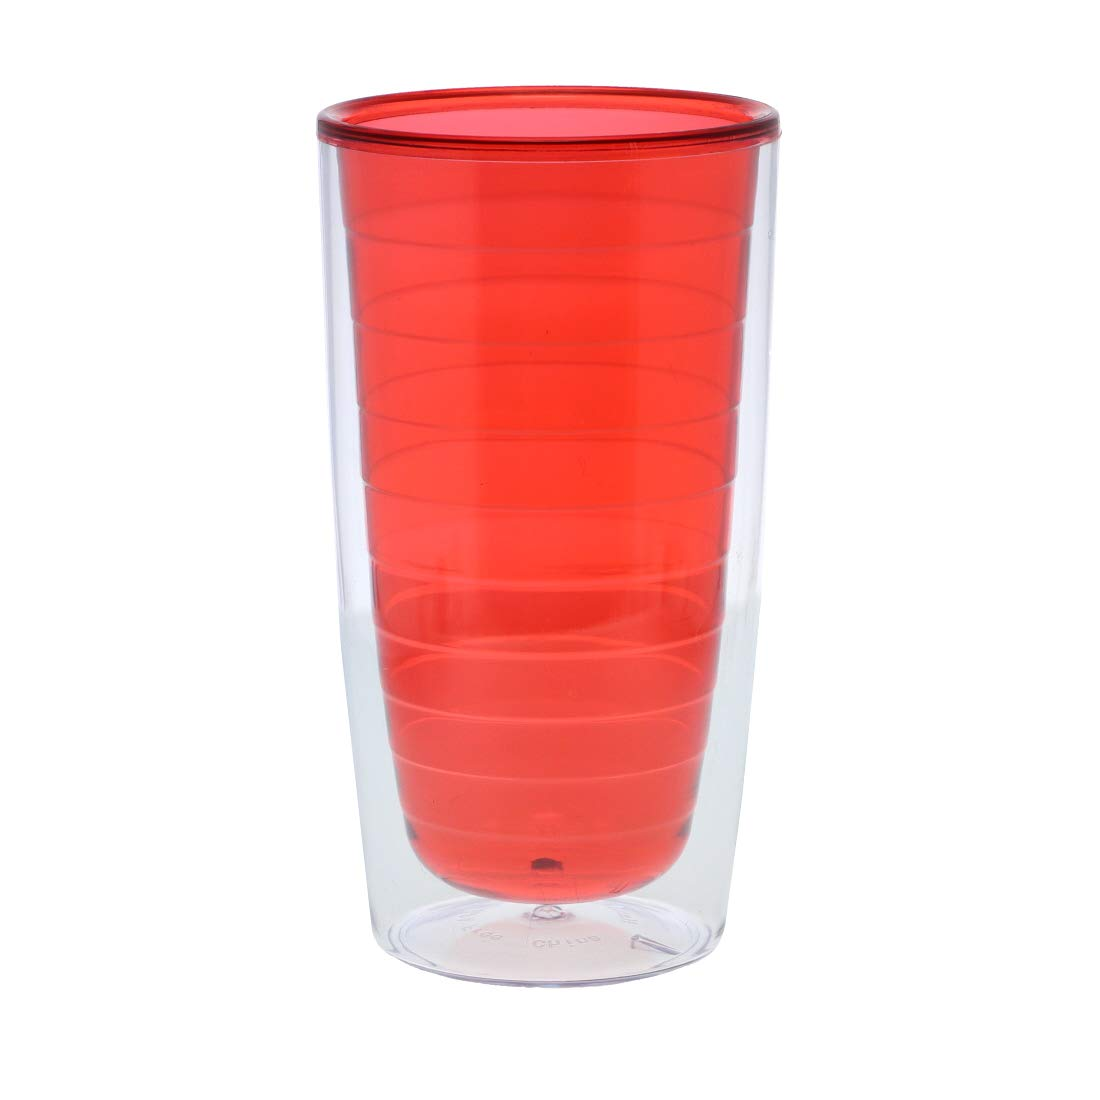 Red Color Splash Tumbler 16oz Double Wall Set of 5